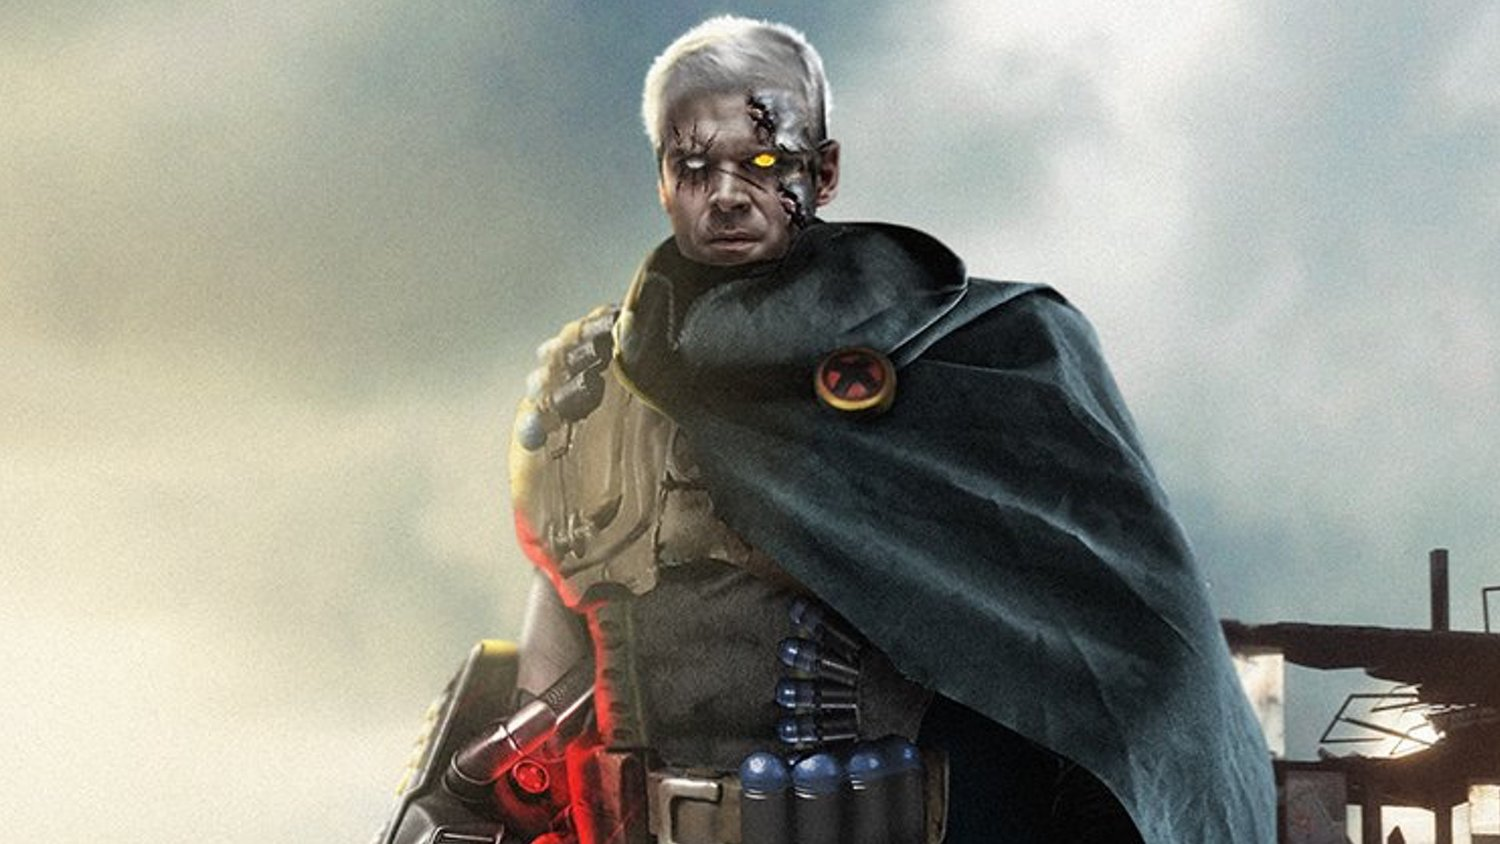 Fan Art Shows STRANGER THINGS Star David Harbour in the Role of Cable in DEADPOOL 2